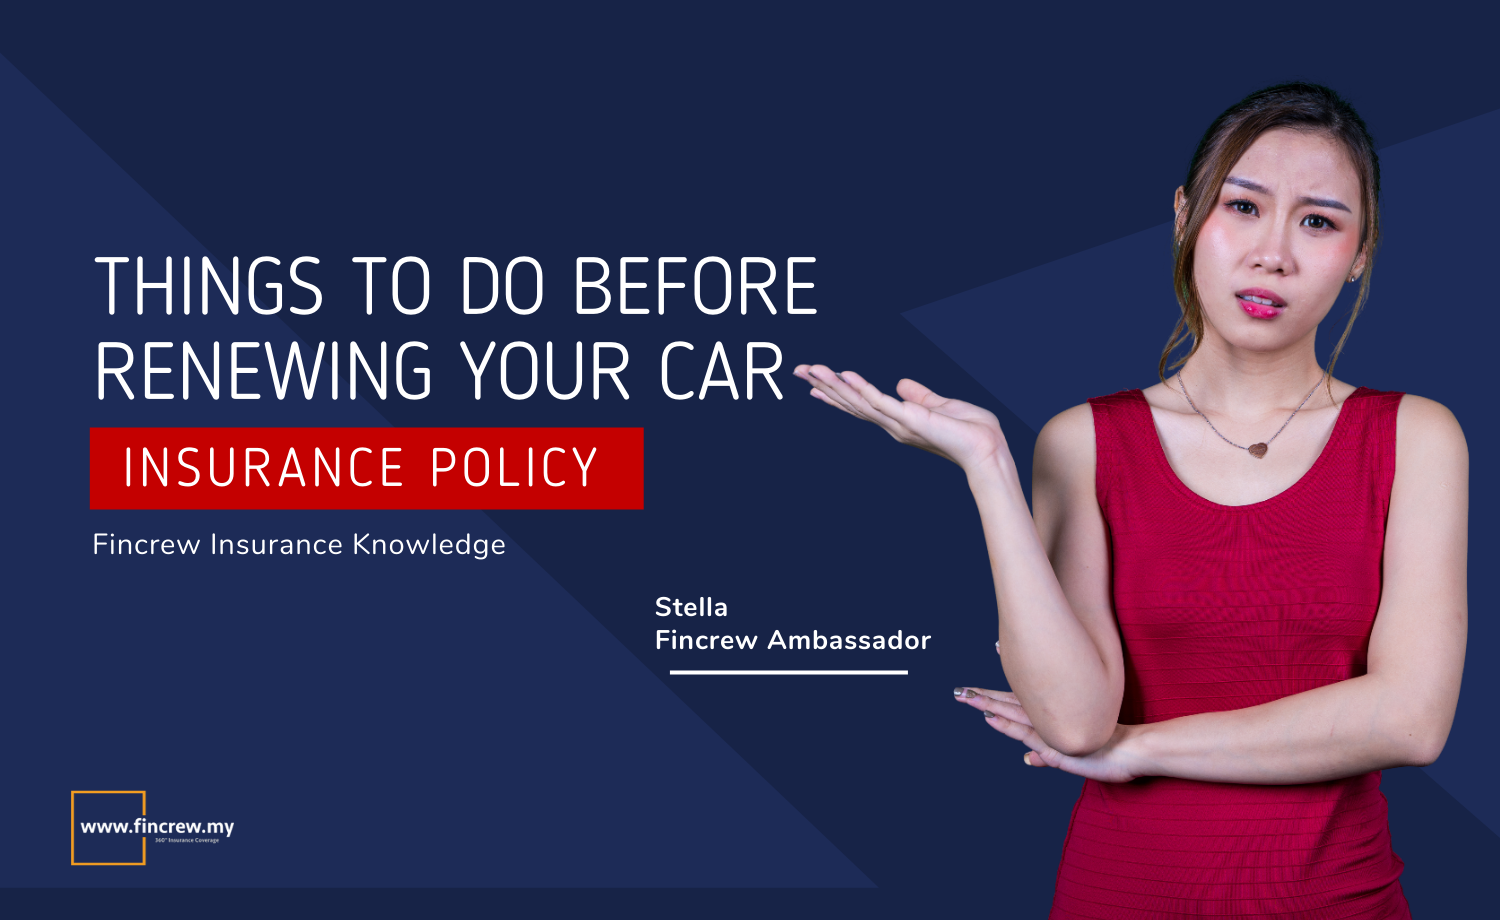 Things To Do Before Renewing Your Car Insurance Policy Blog Featured Image